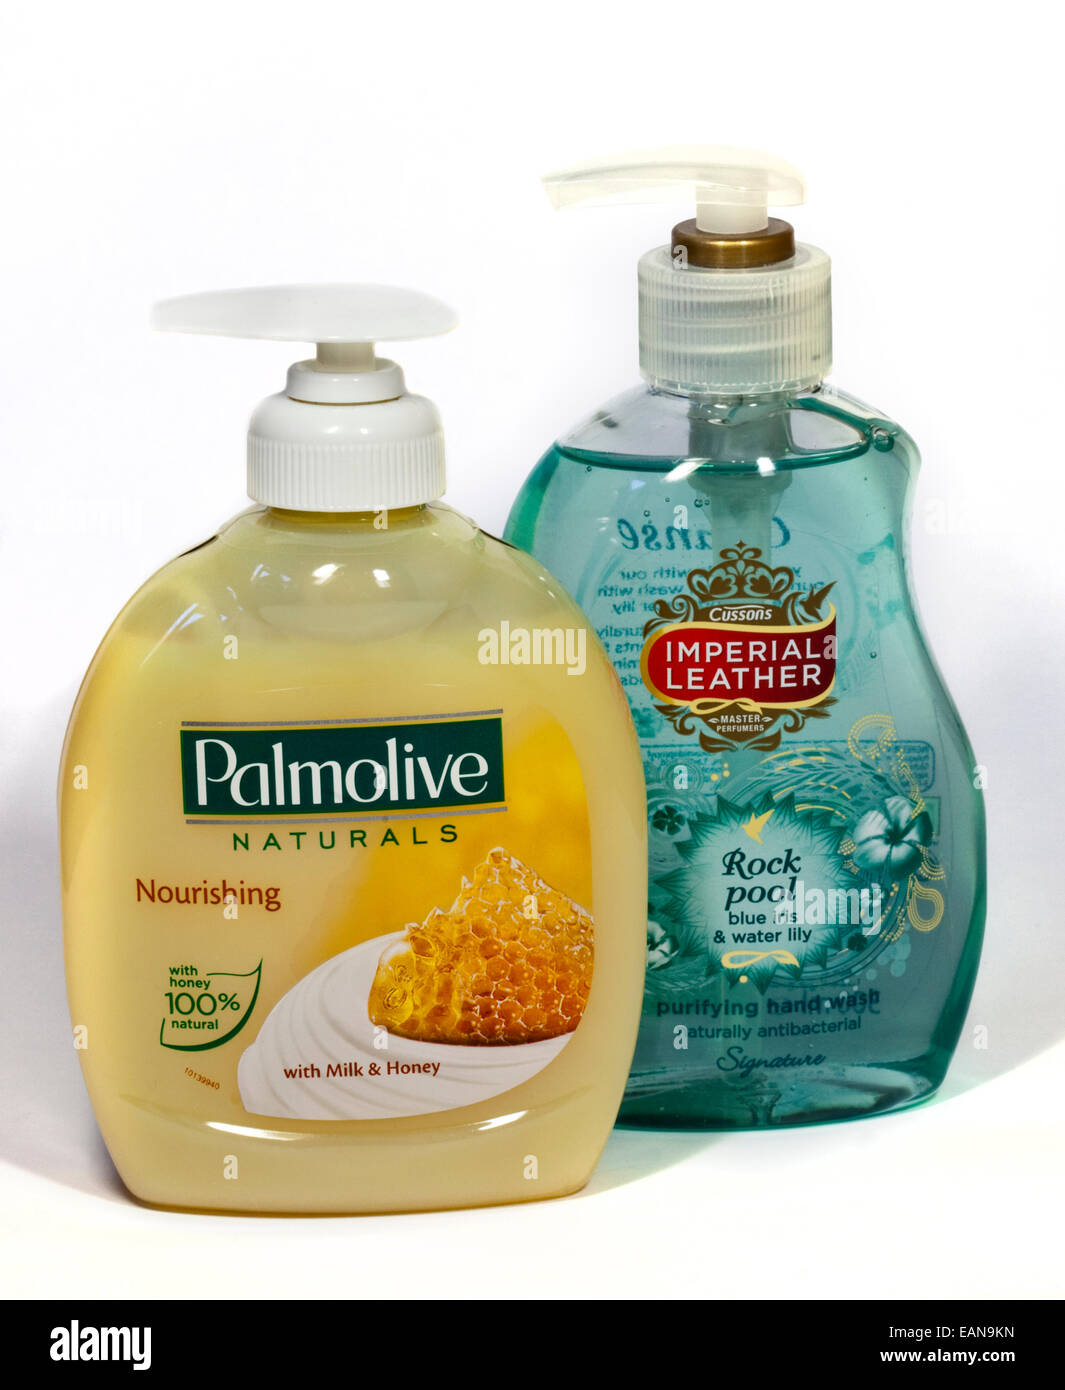 Palmolive and Imperial Leather Hand Washes - Stock Image